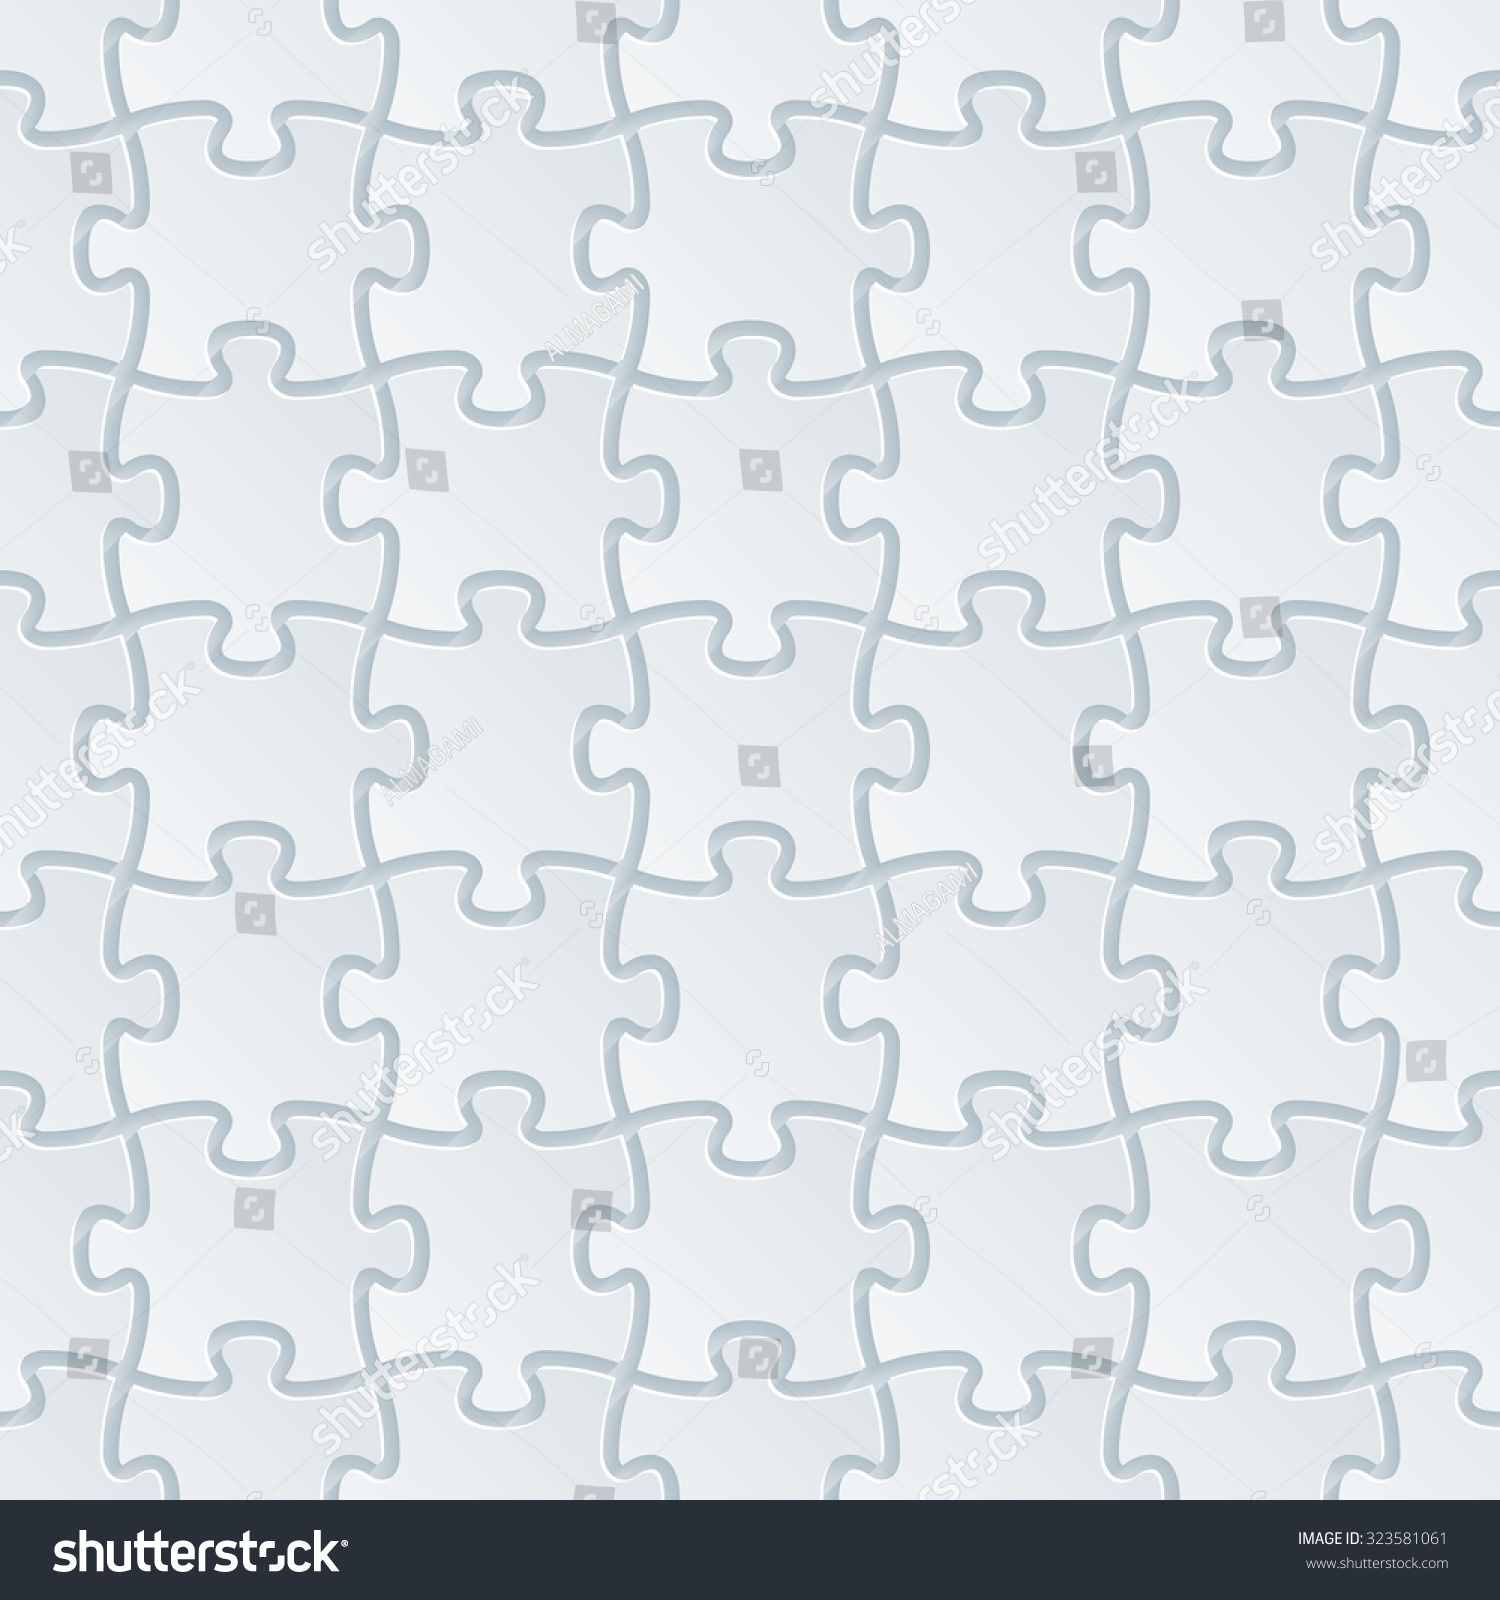 royalty free jigsaw puzzle white perforated paper u2026 323581061